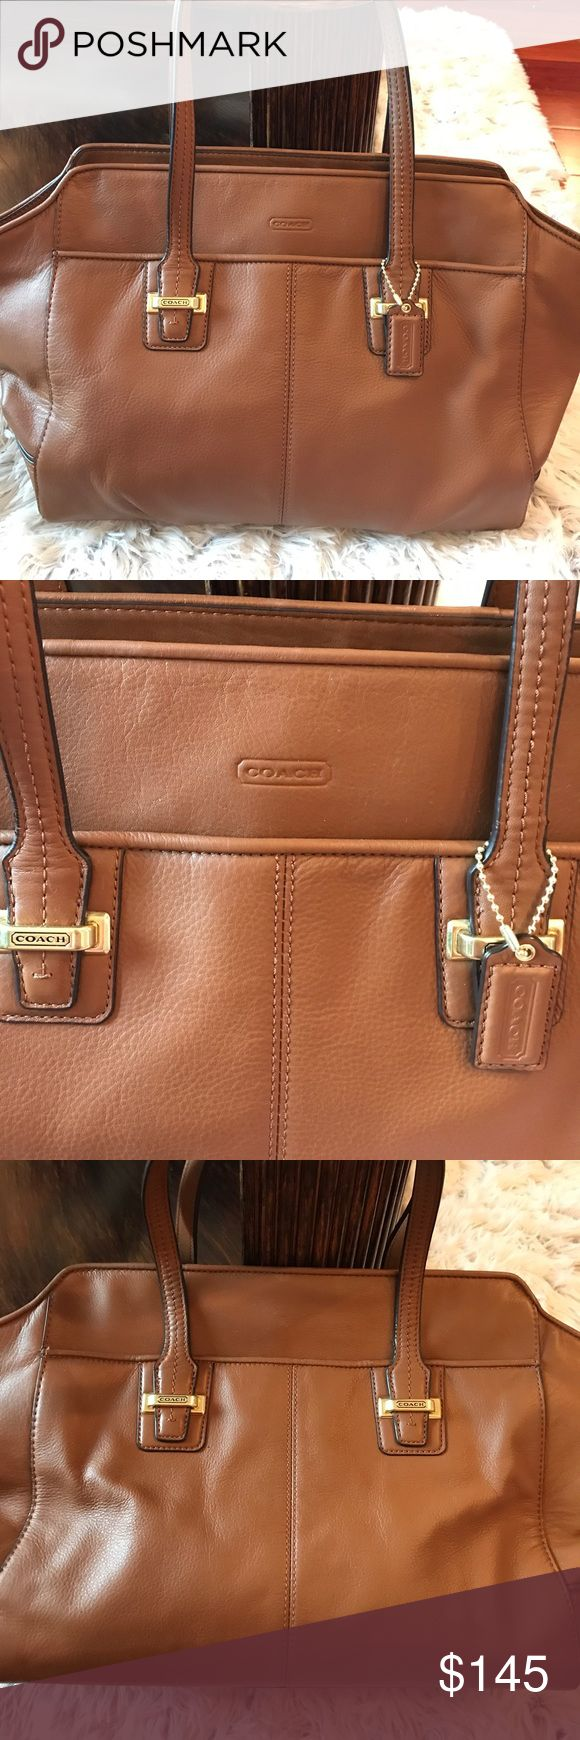 Beautiful Coach Leather Bag Perfect condition Coach Leather bag that is camel color with gold hardware. The leather is super soft and has four gold feet on the bottom of the bag to keep it from scratching. Bag has two outside pockets and opens up wide. Coach Bags